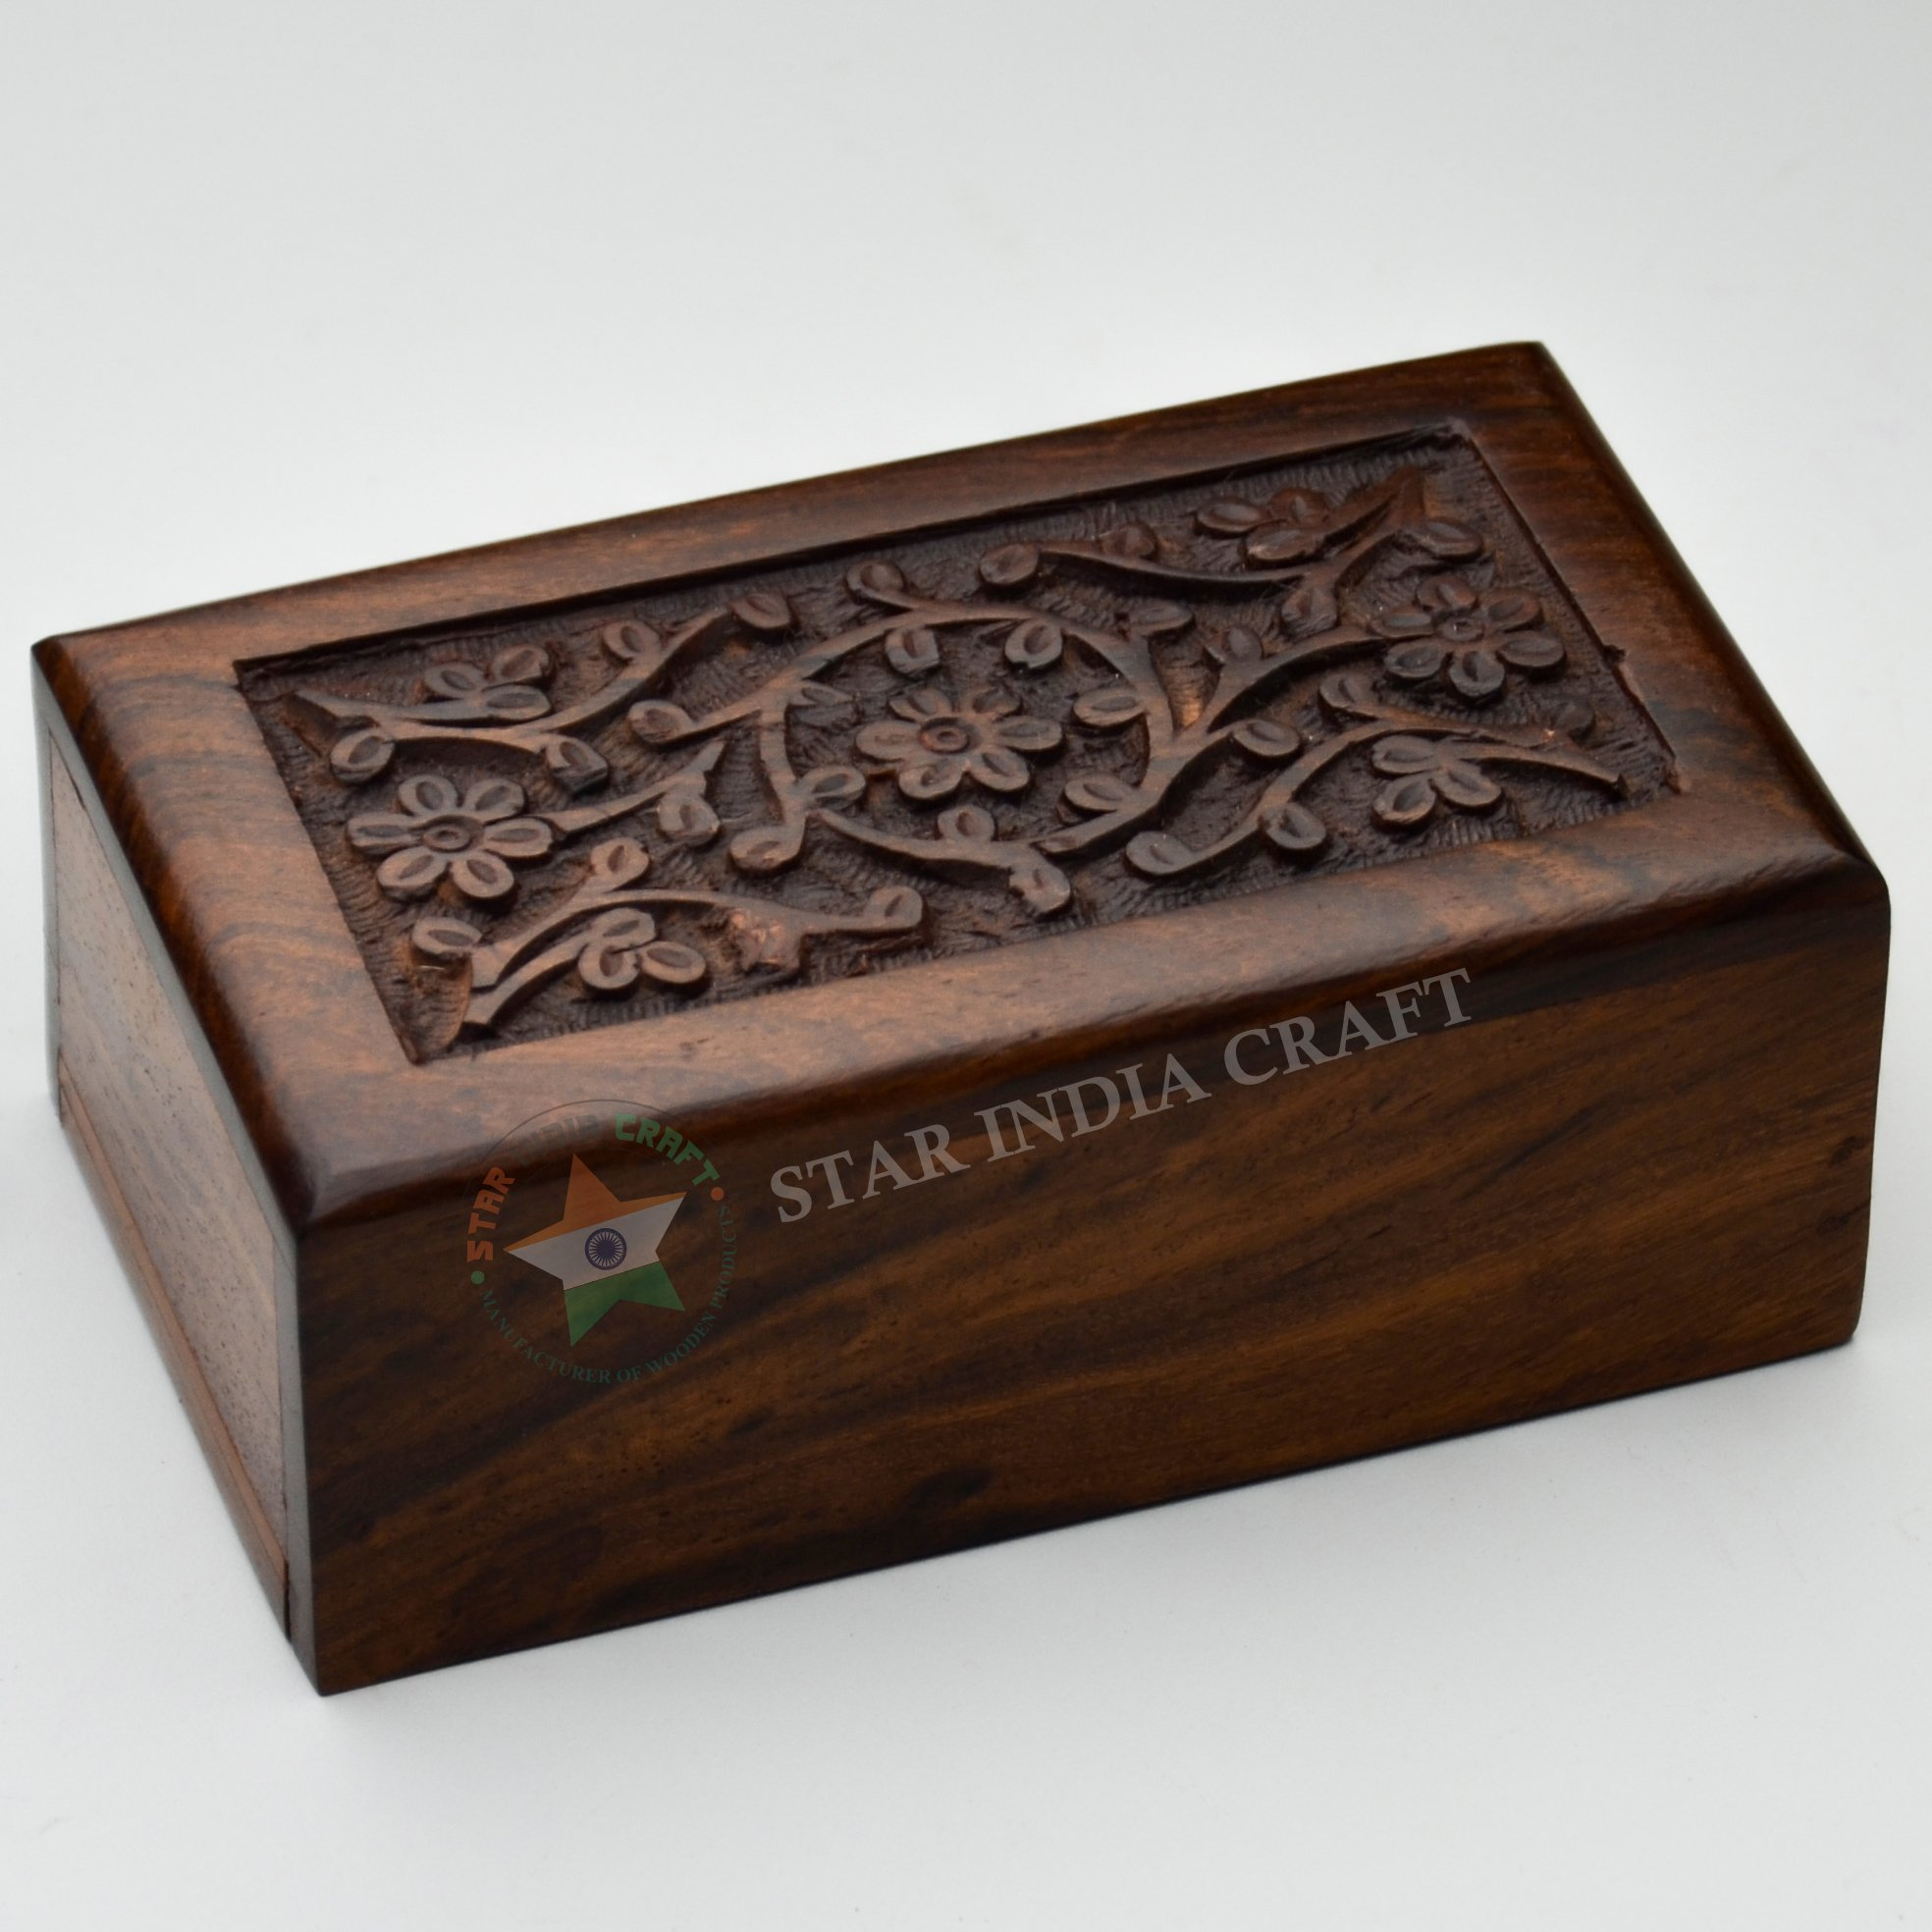 STAR INDIA CRAFT Hand Made Floral Engraving Handcarved Wood Urn by Wooden Urns for Human Ashes Adult (Medium - 6.5 x 4.25 x 2.75 inches)